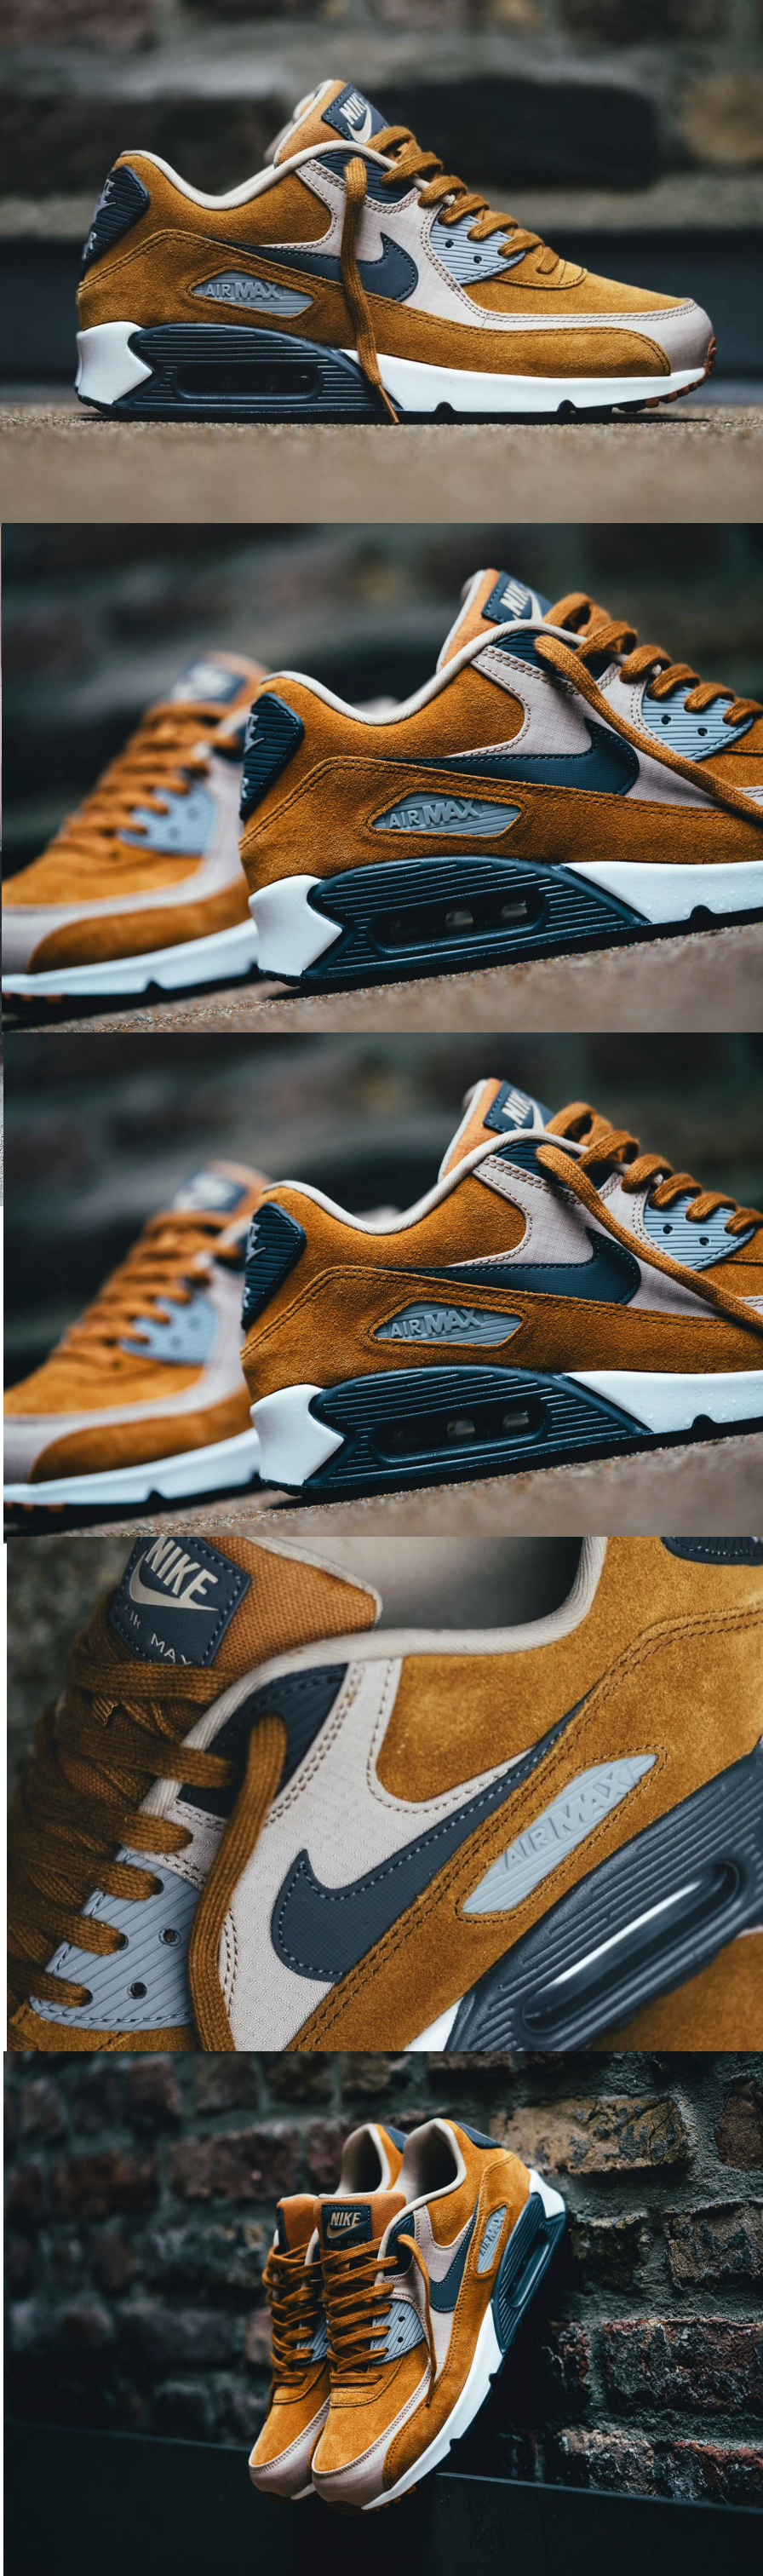 Nike Air Max 90 PRM Desert Ochre #Sneakers #Zapatillas These are mine!!! twitter.com/...